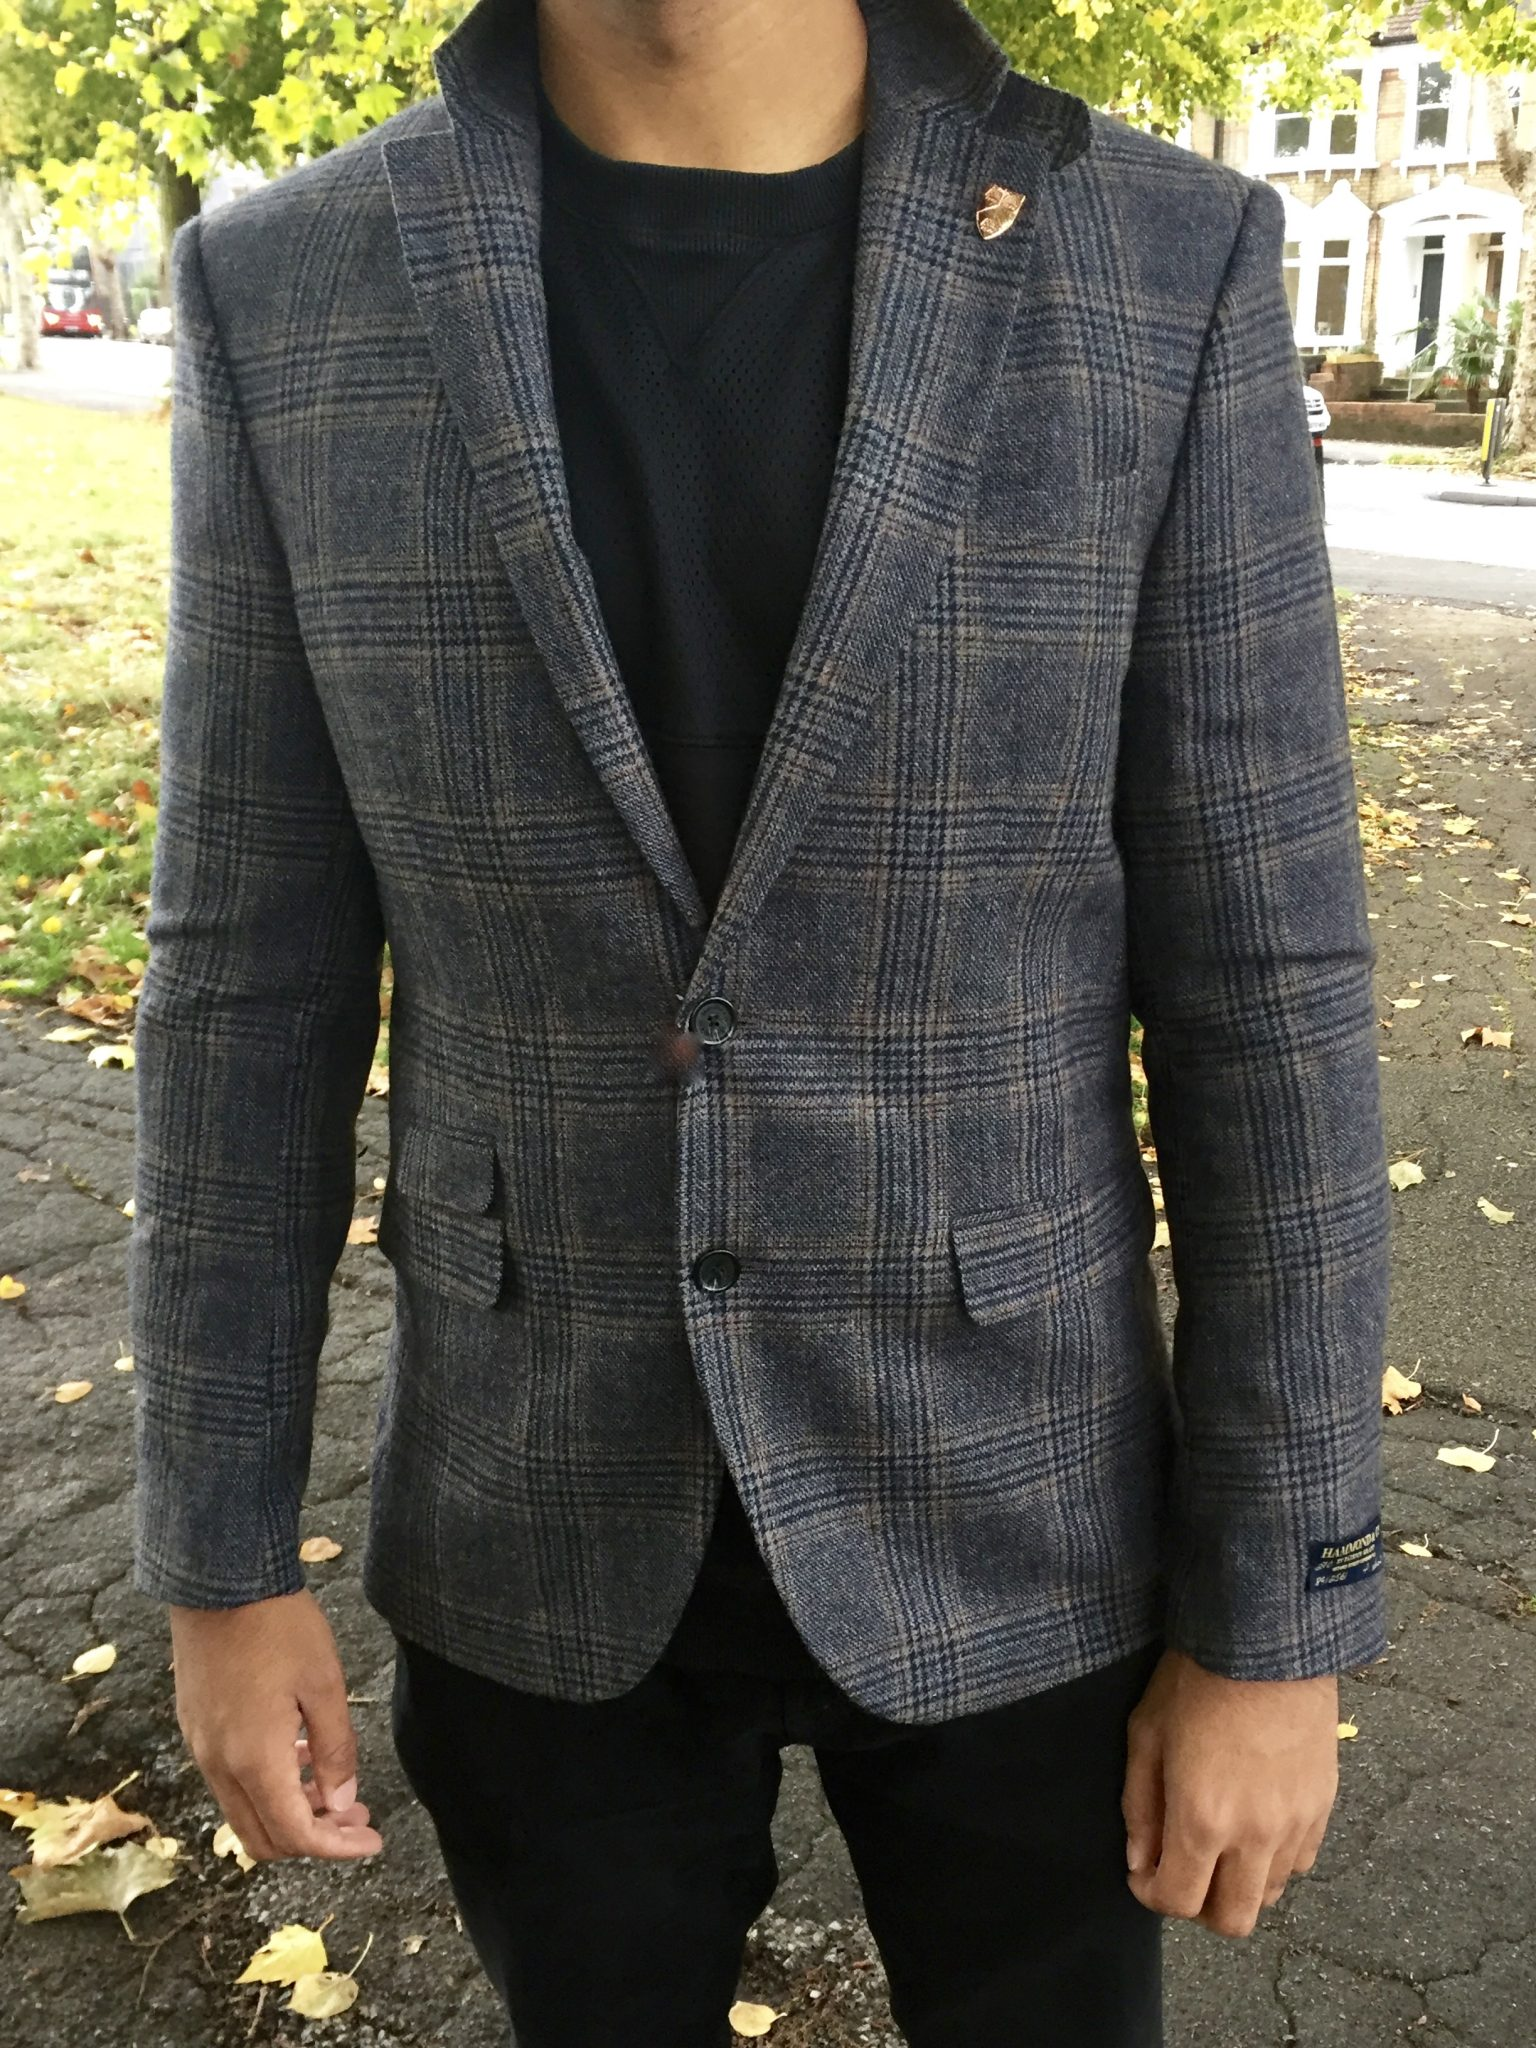 Patrick Grant's exclusive Hammond & Co. range staple blazer review